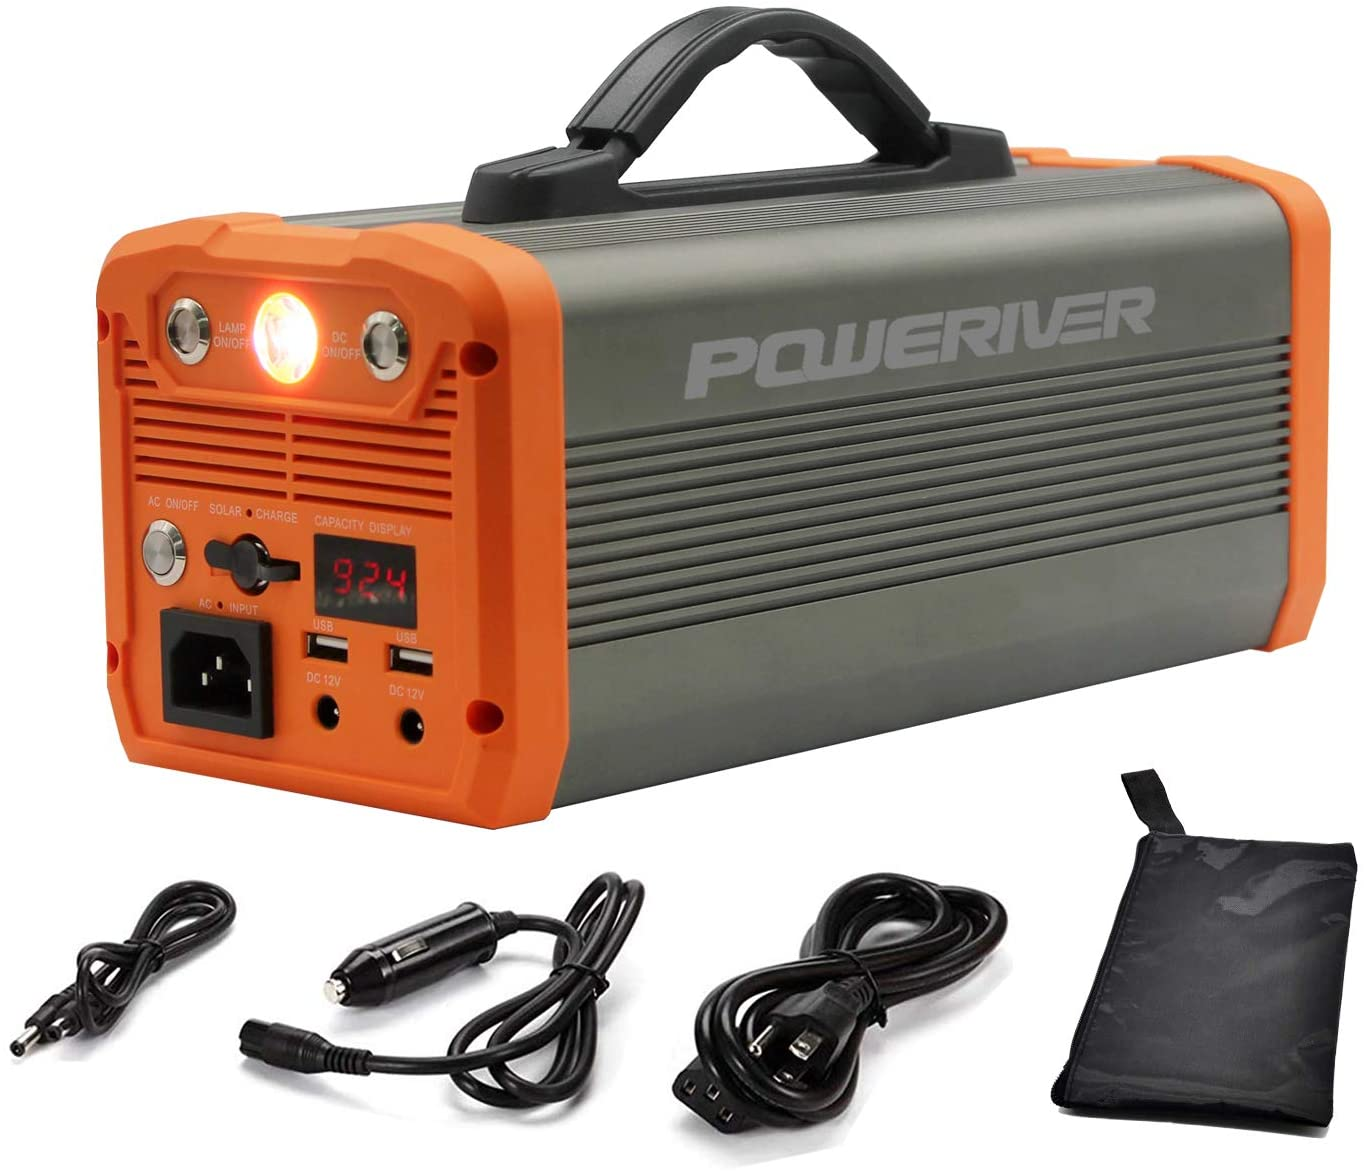 POWERIVER 300W Portable Power Station 222Wh Solar Generator 110V AC Outlet 12V DC Out 5V/3A USB Portable Generator UPS Battery Backup for PC CPAP Laptop RV Camping Emergencies